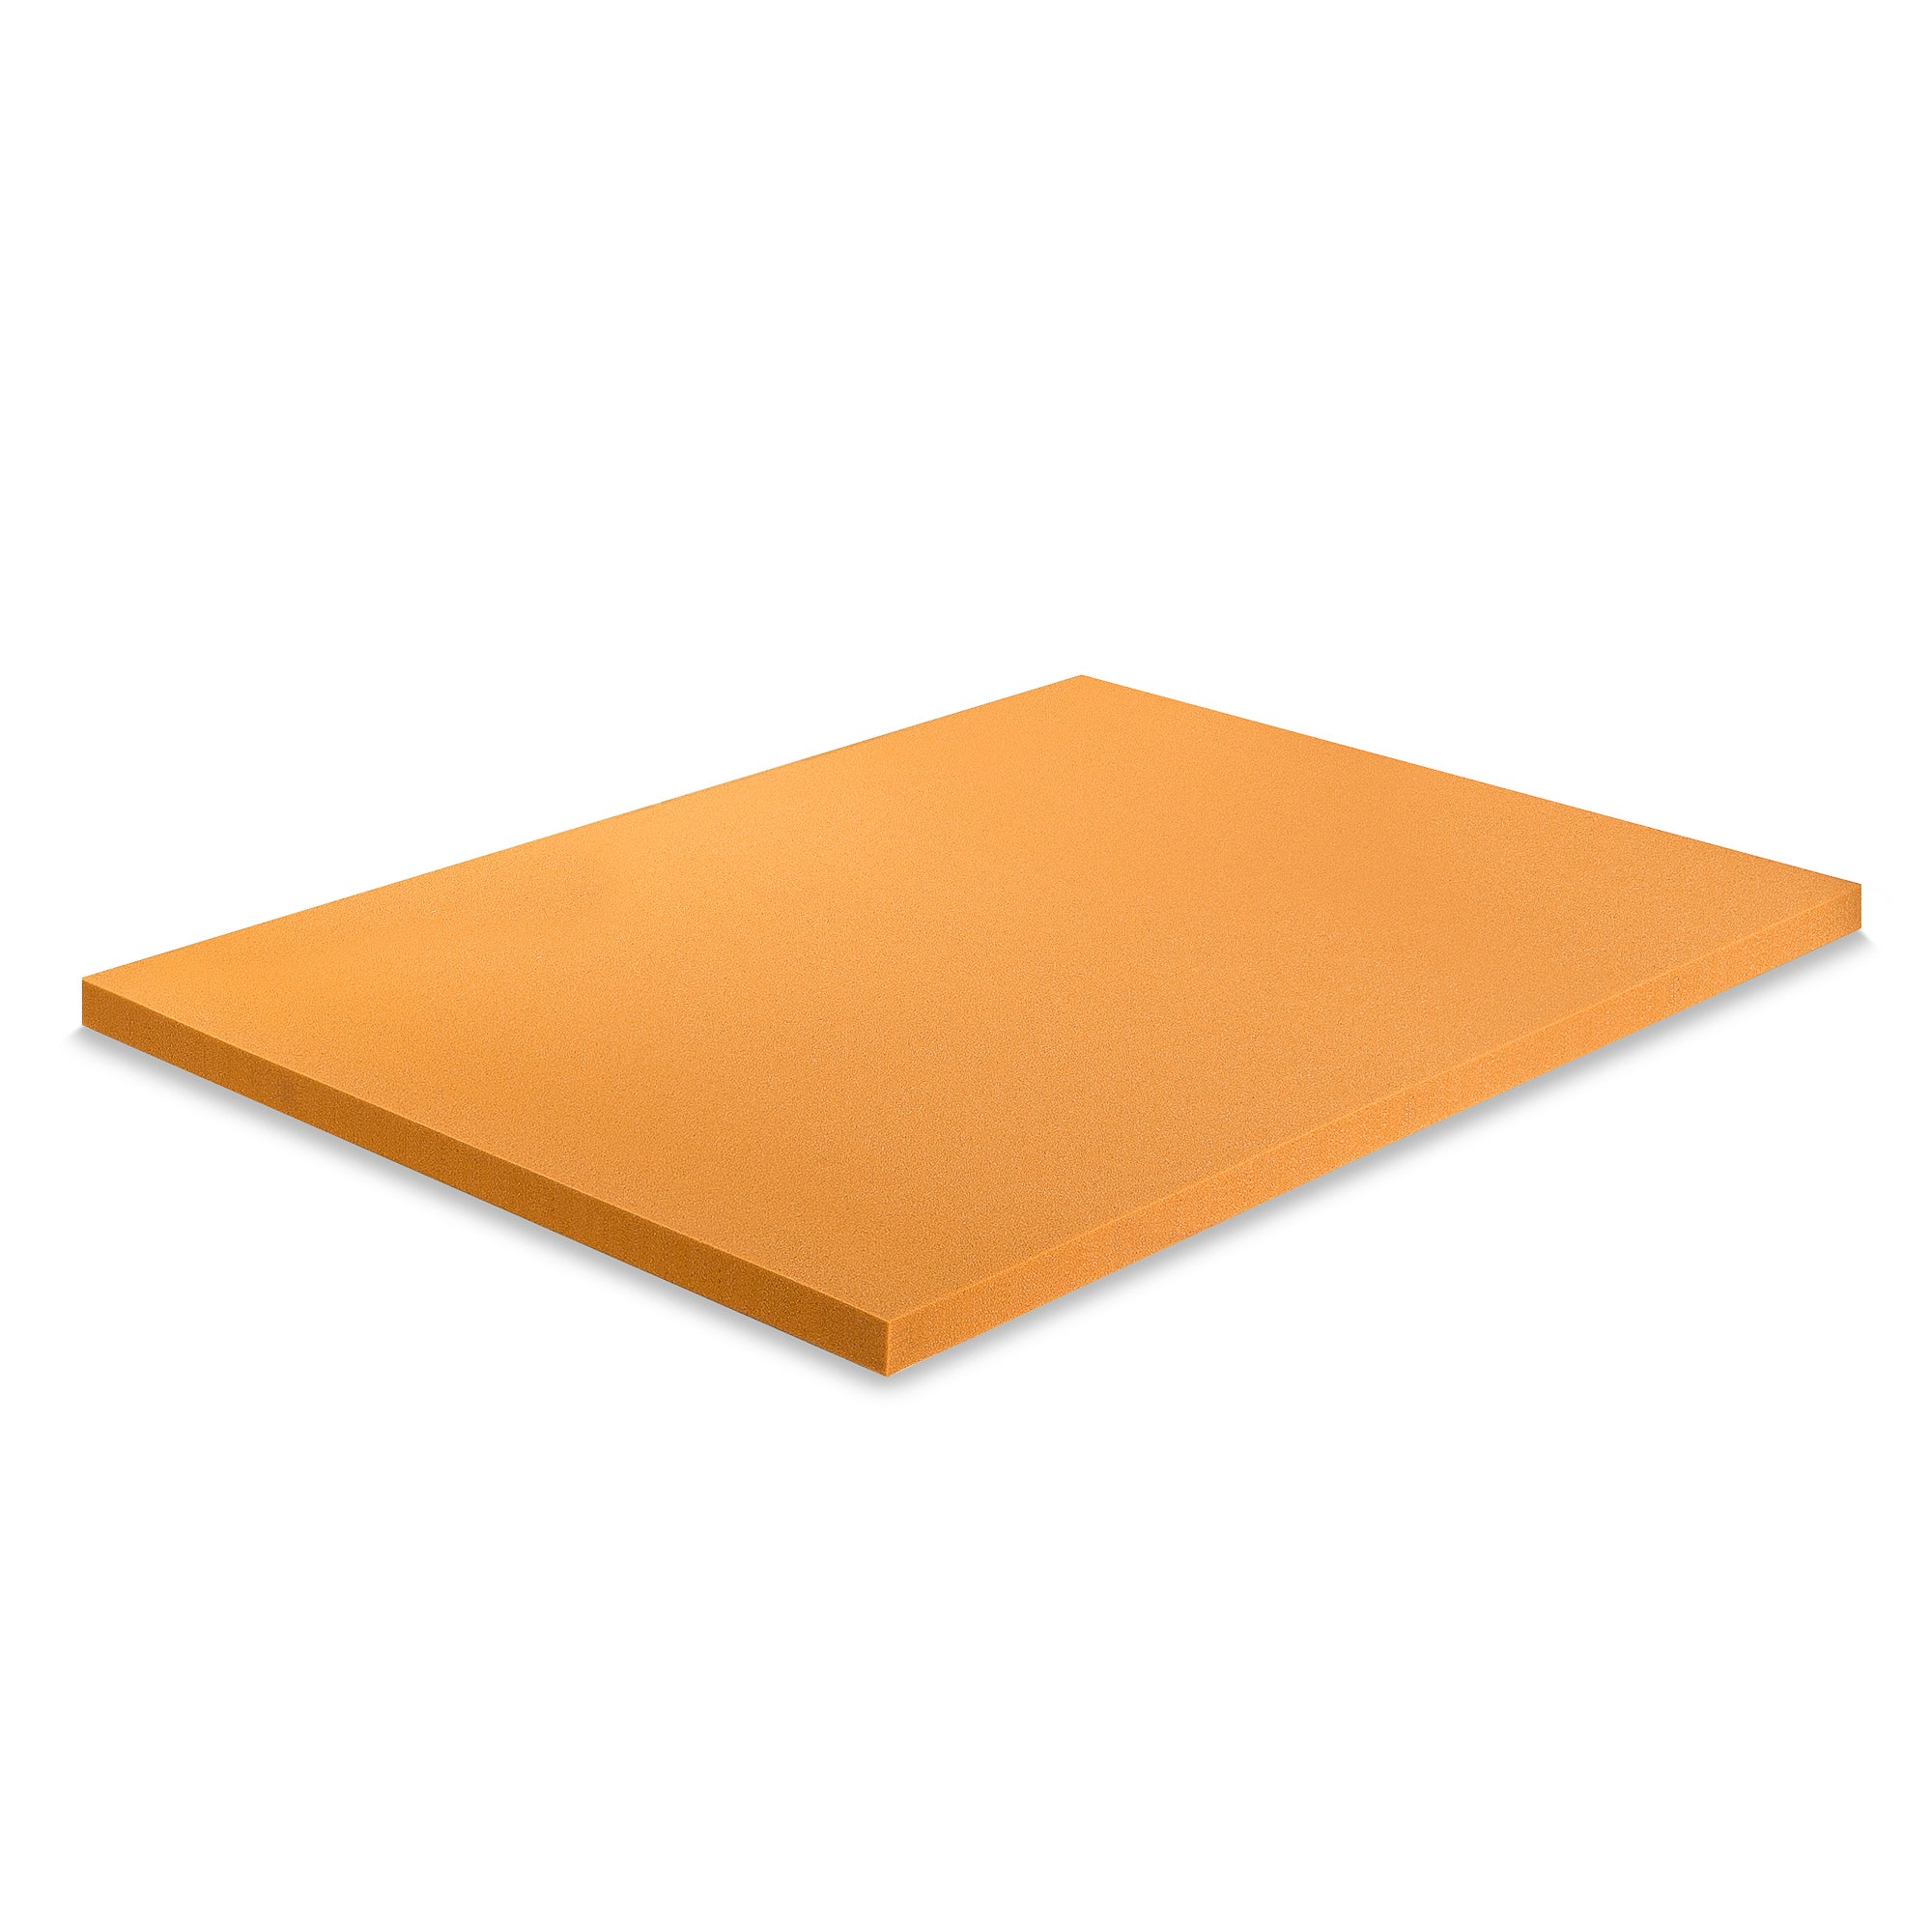 Zinus 5cm Cool Antimicrobial Copper Infused Memory Foam